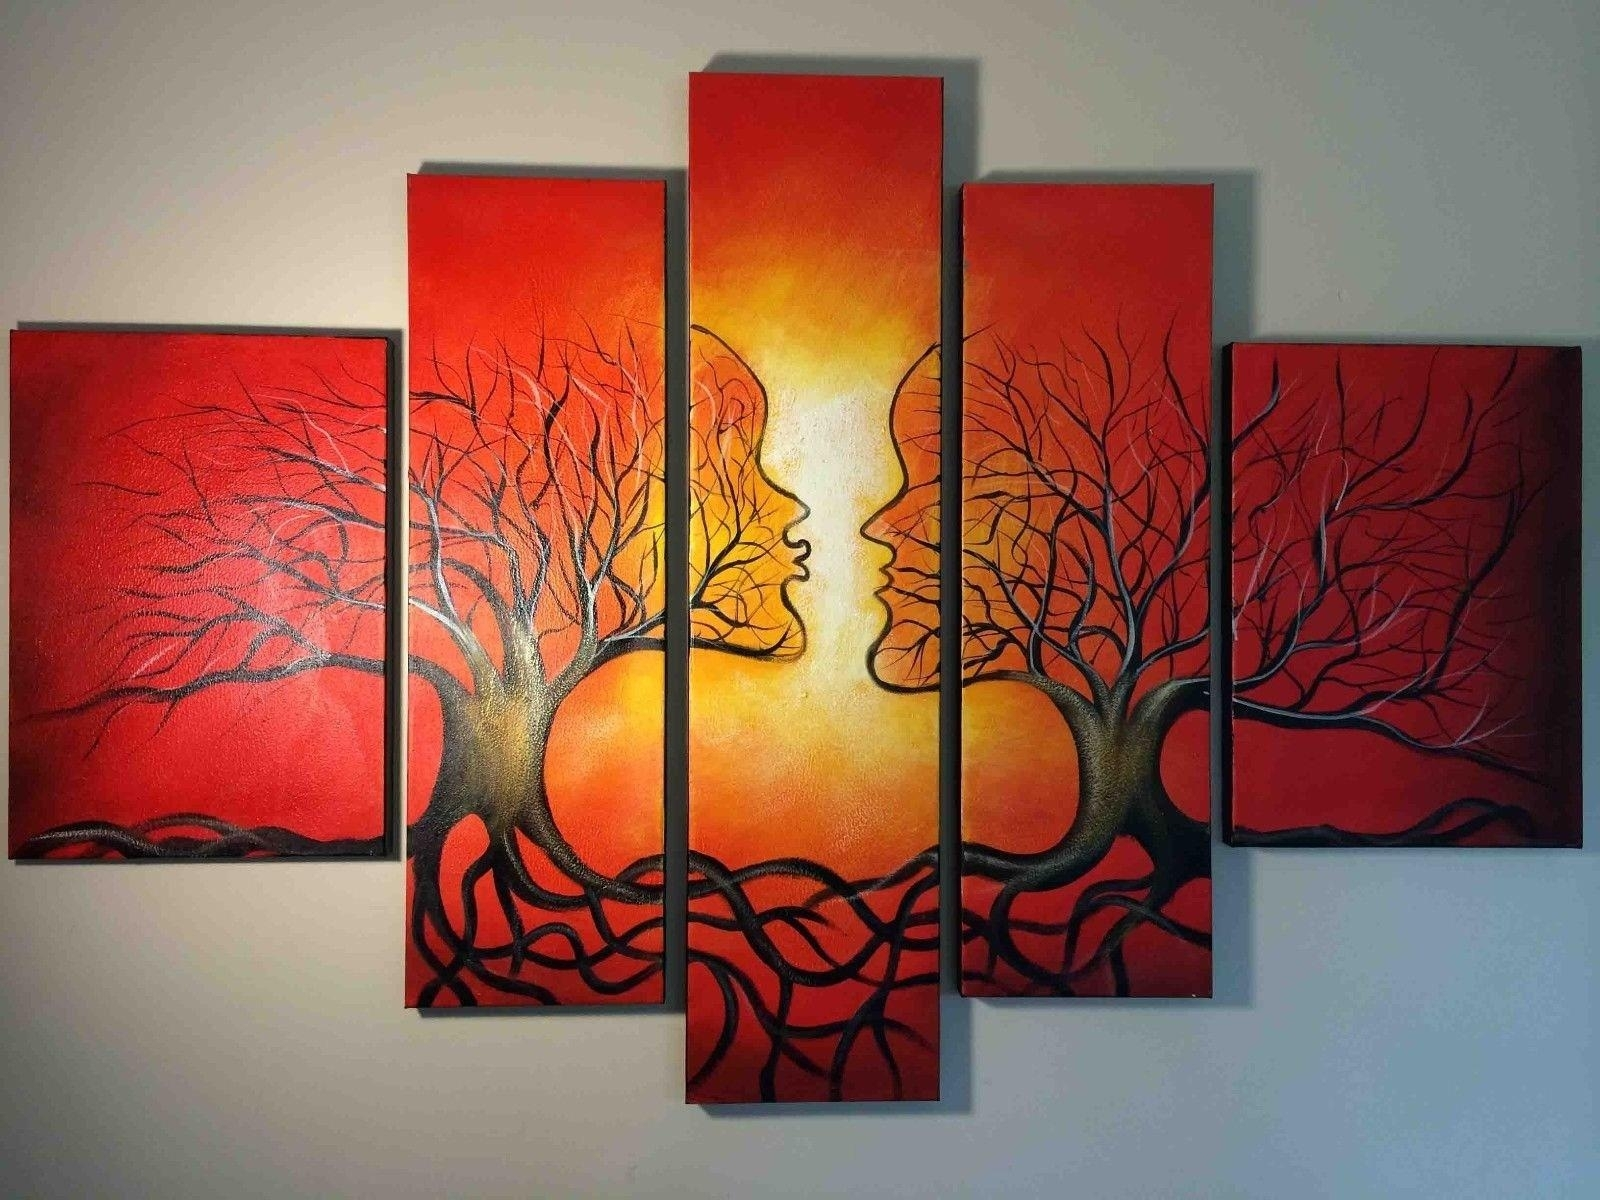 Wall Art Designs: Abstract Wall Art Red Abstract Oil Painting For Most Up To Date Abstract Orange Wall Art (View 13 of 20)